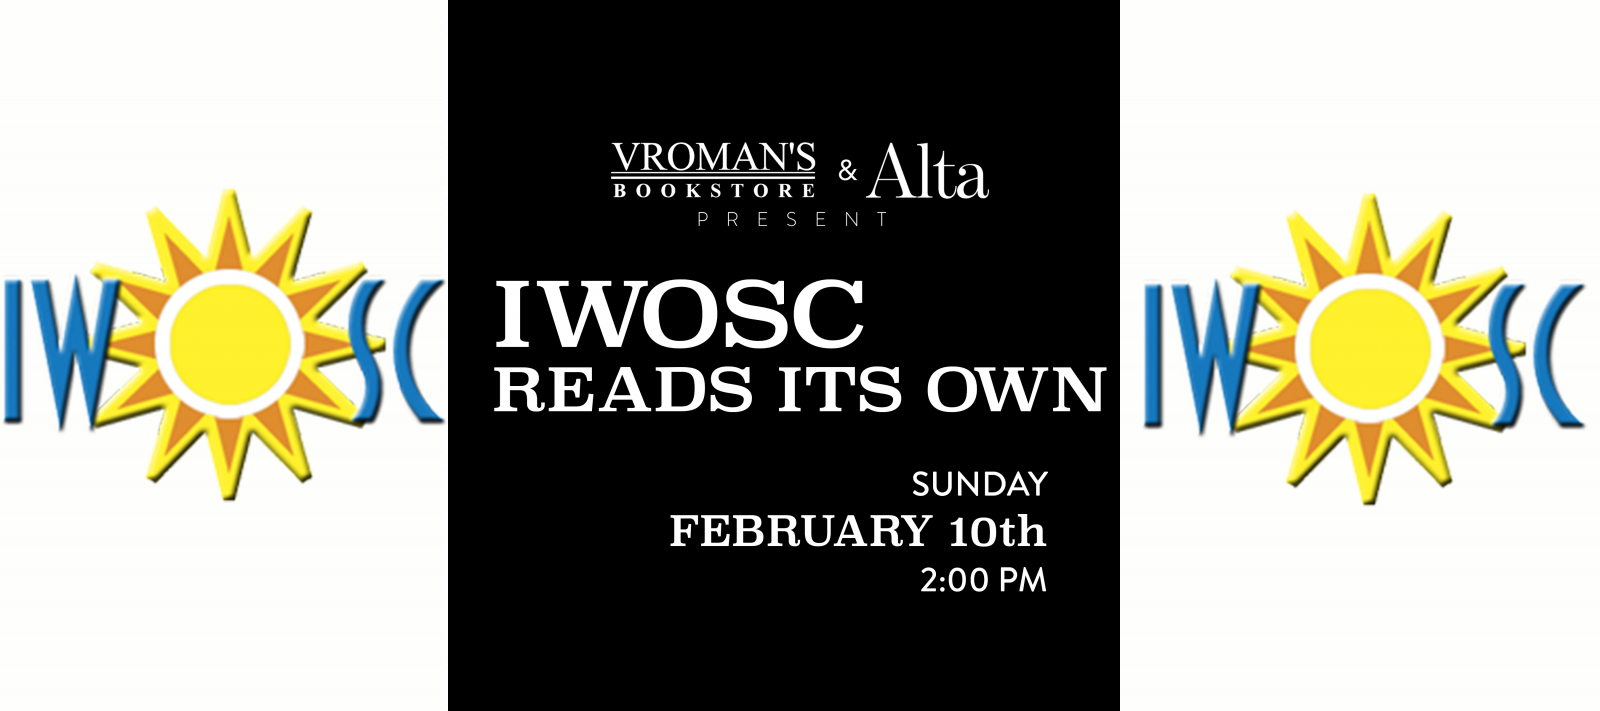 IWOSC Reads Its Own Sunday February 10th at 2pm